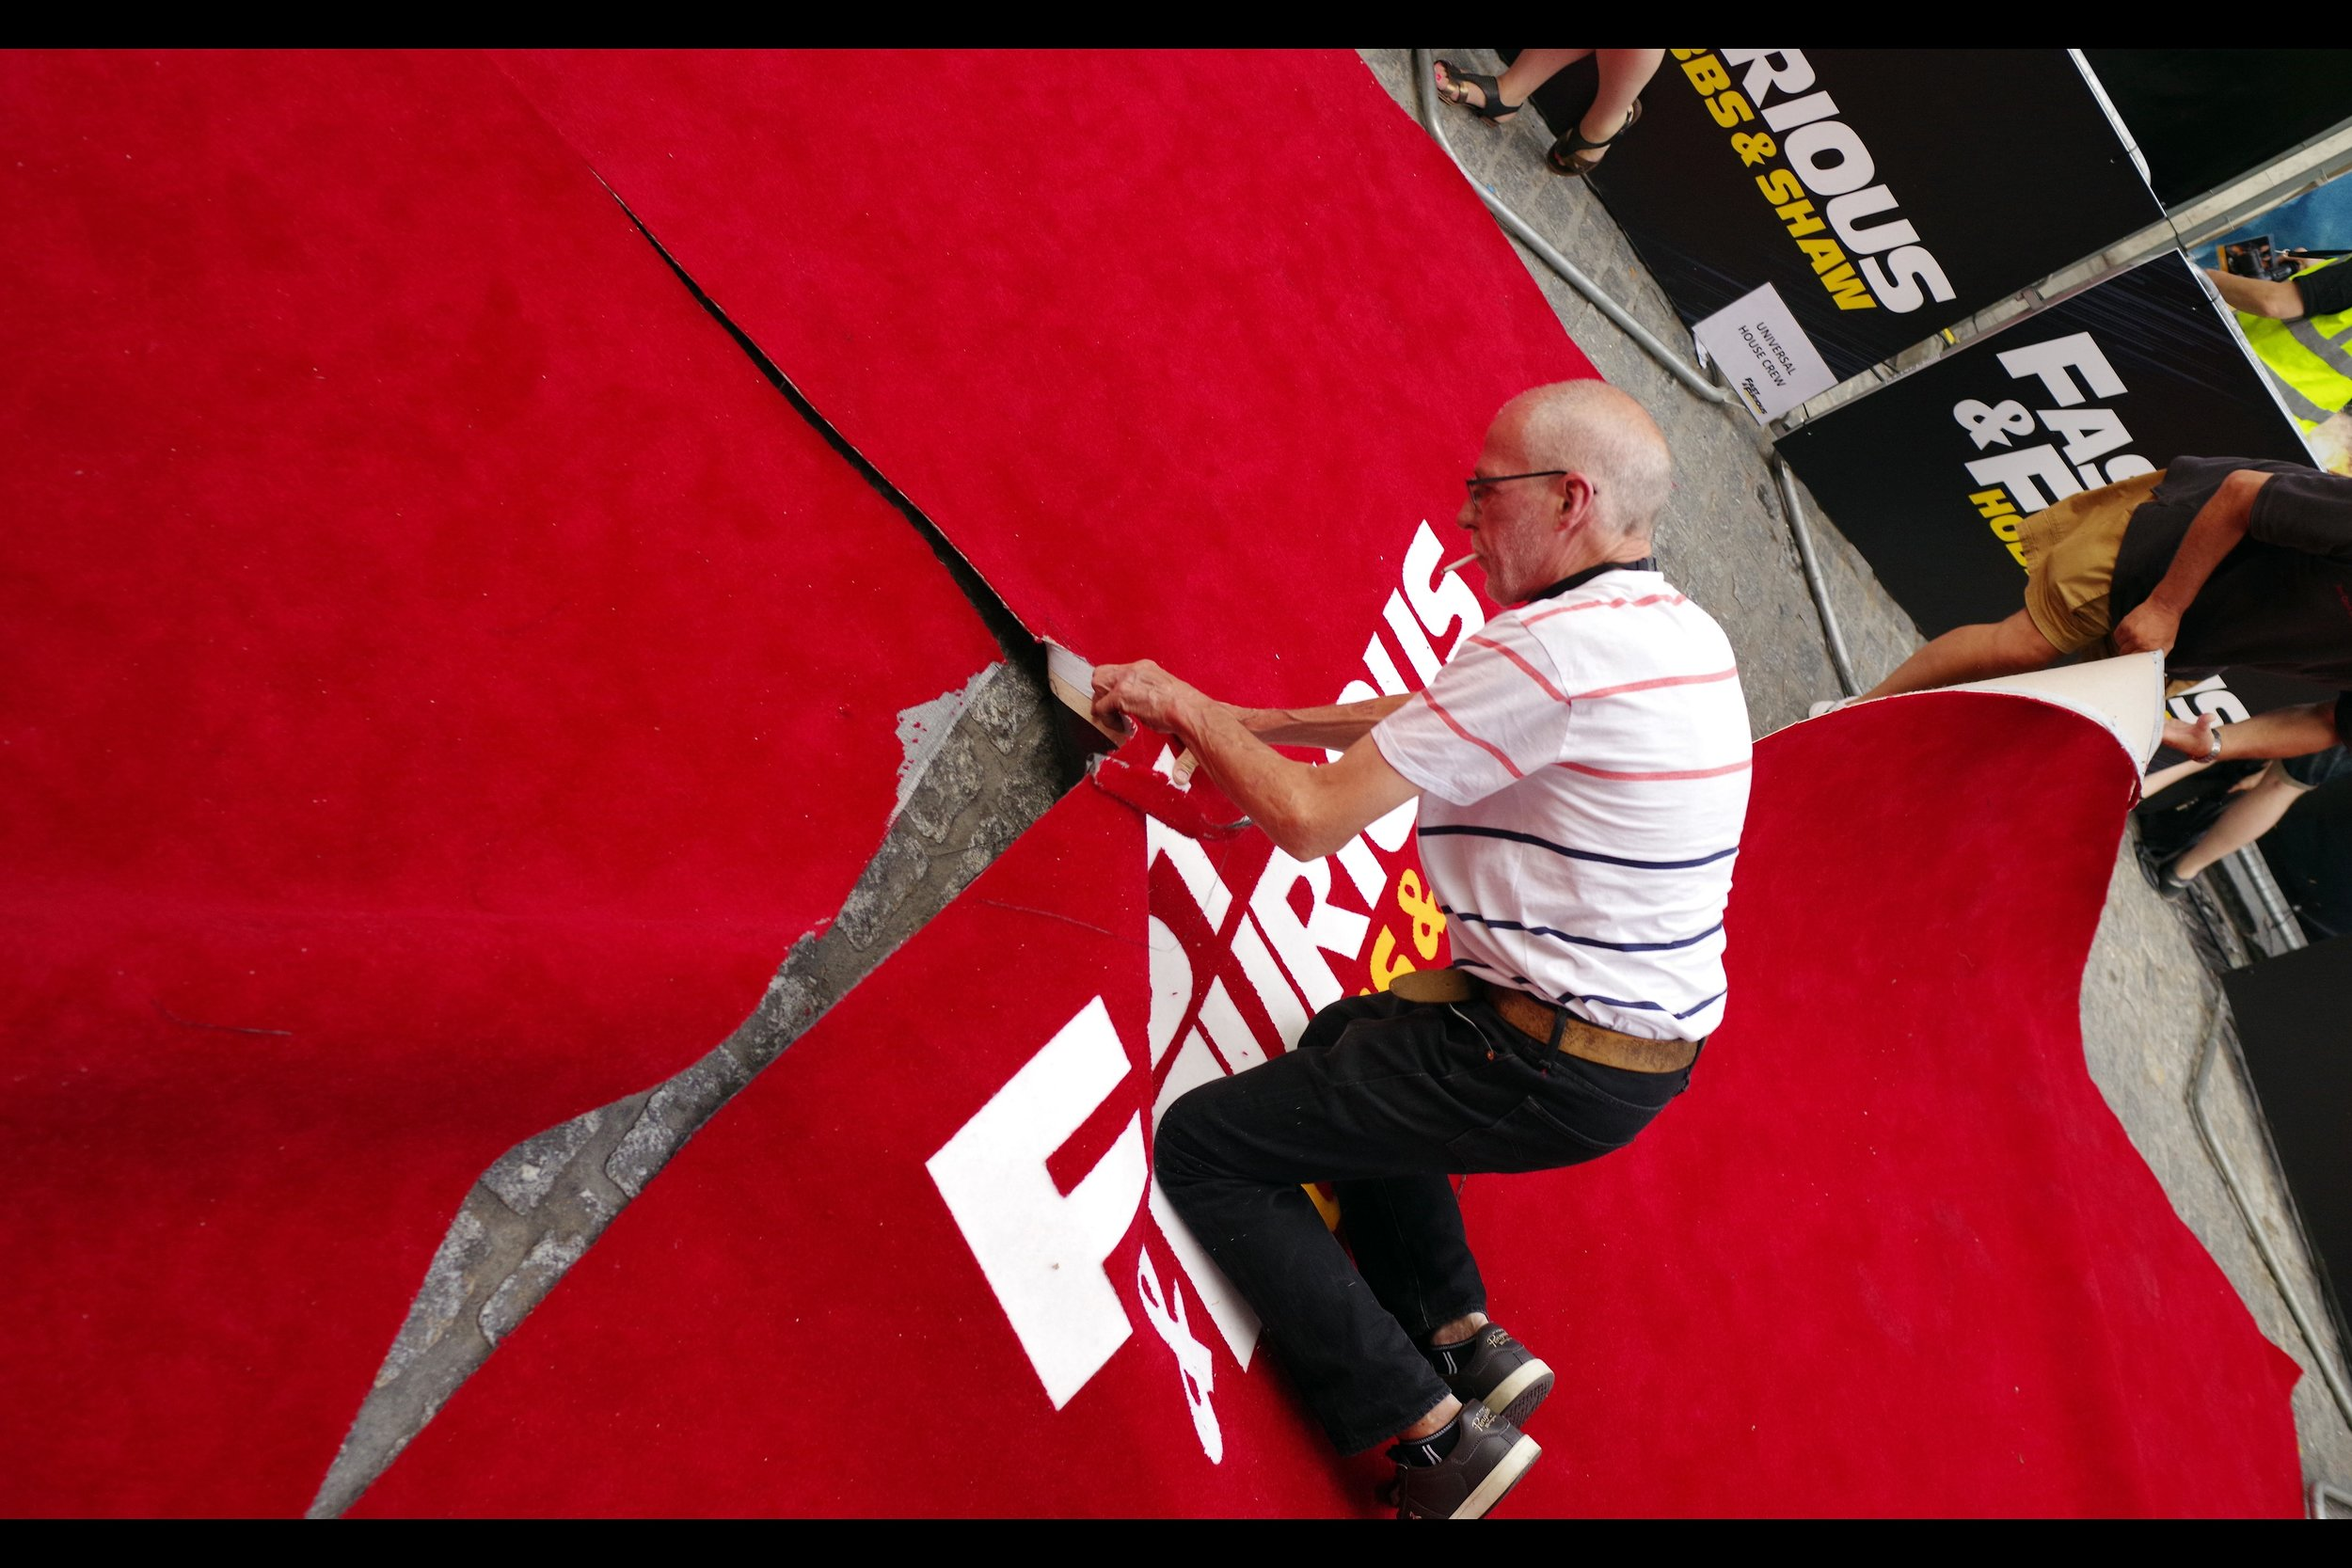 It wasn't a fast premiere (almost an hour long), and it certainly wasn't furious (everyone was cheerful and friendly) - but they sure started clearing the carpet, barriers and setup quickly afterwards.